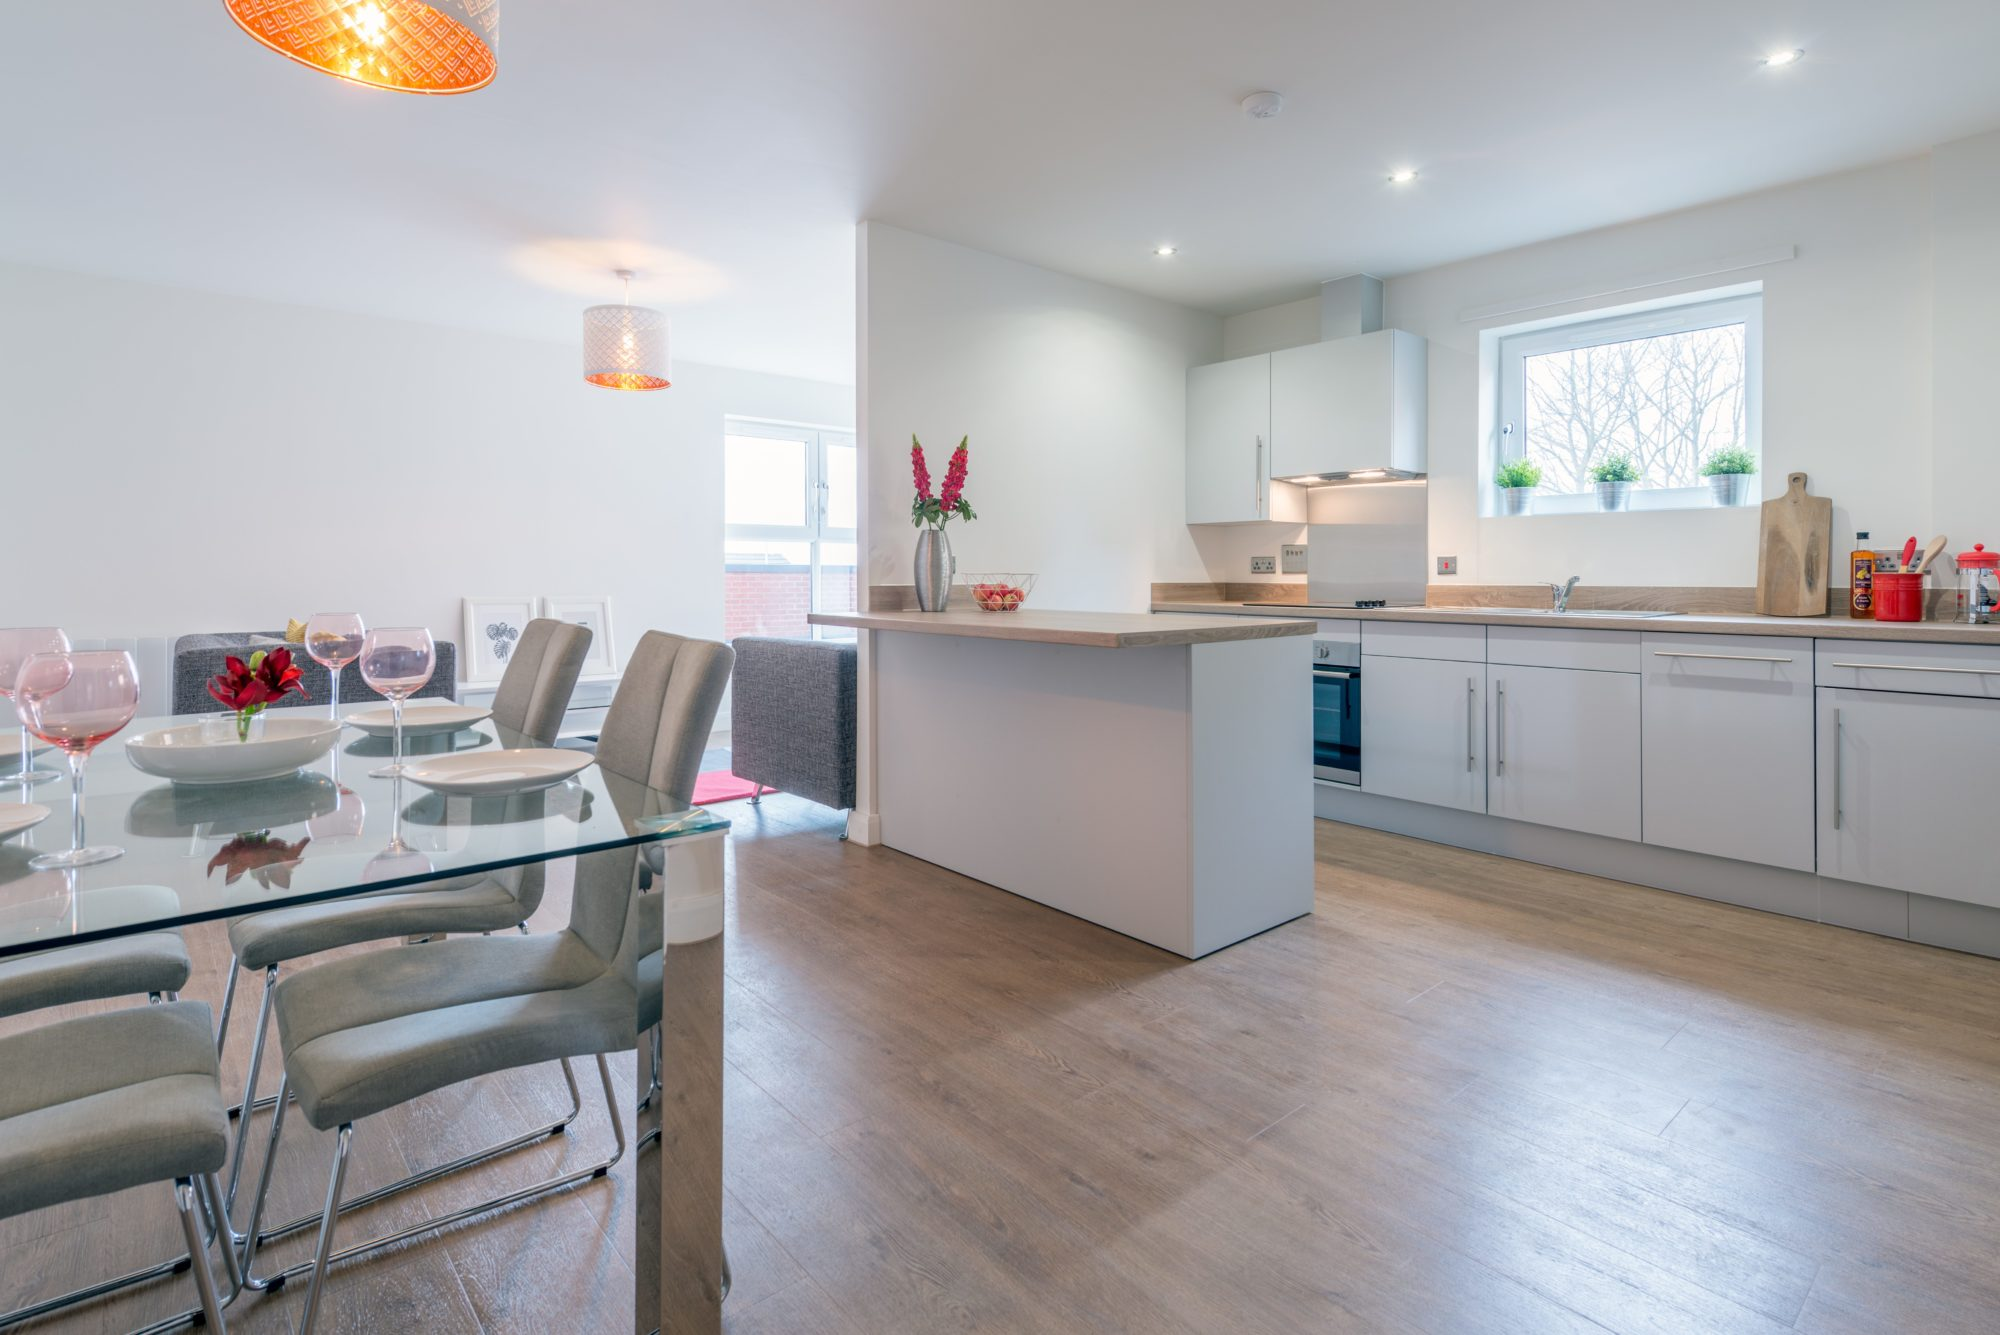 Awesome High Quality, Modern Rental 3 Bedroom Apartments To Rent In Leeds At The